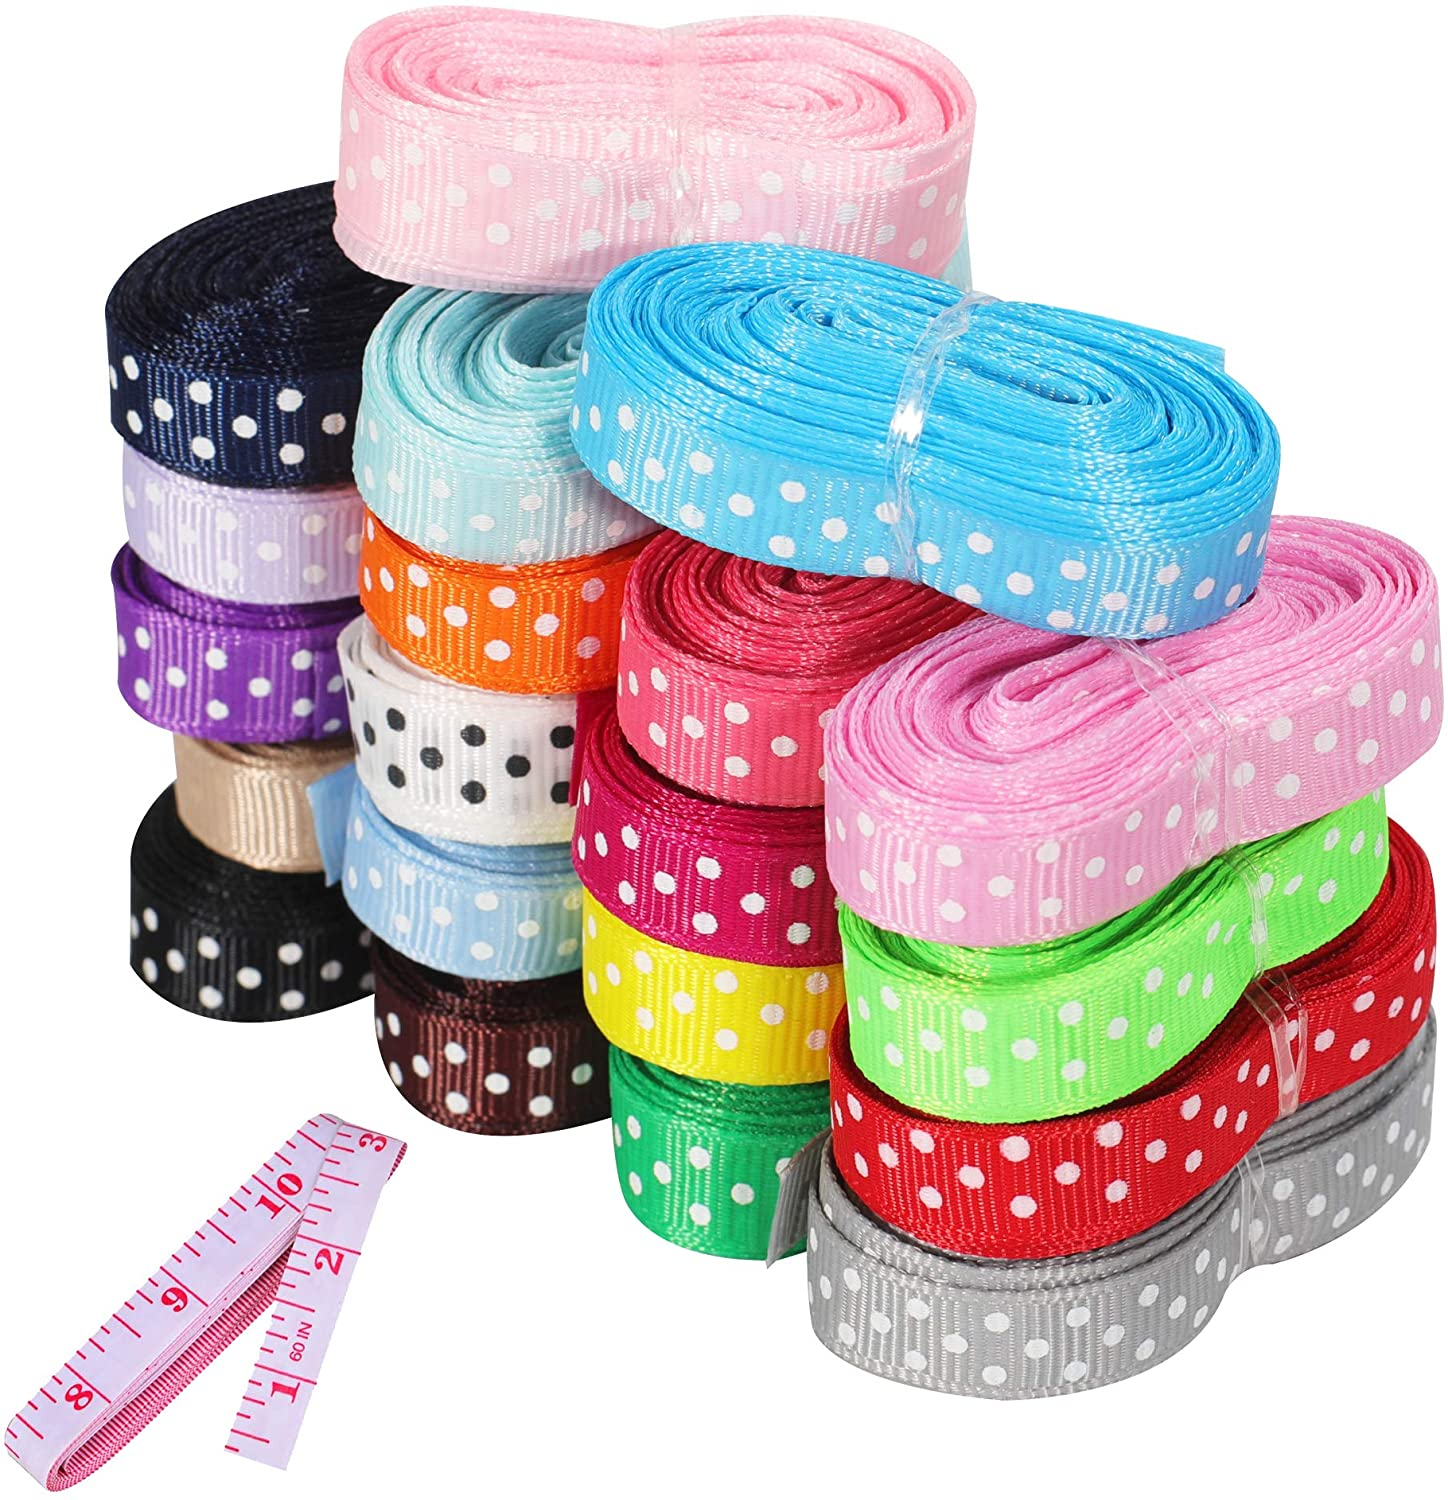 Grosgrain Ribbon for Gift Wrapping, 3/8'' Ribbon for Crafts, 40 Yards Polka Dot Fabric Ribbon 20 Colors 2 Yards, Multicolor Ribbon for Sewing, Birthday/Christmas Decoration, Hair Bow Accessories DIY